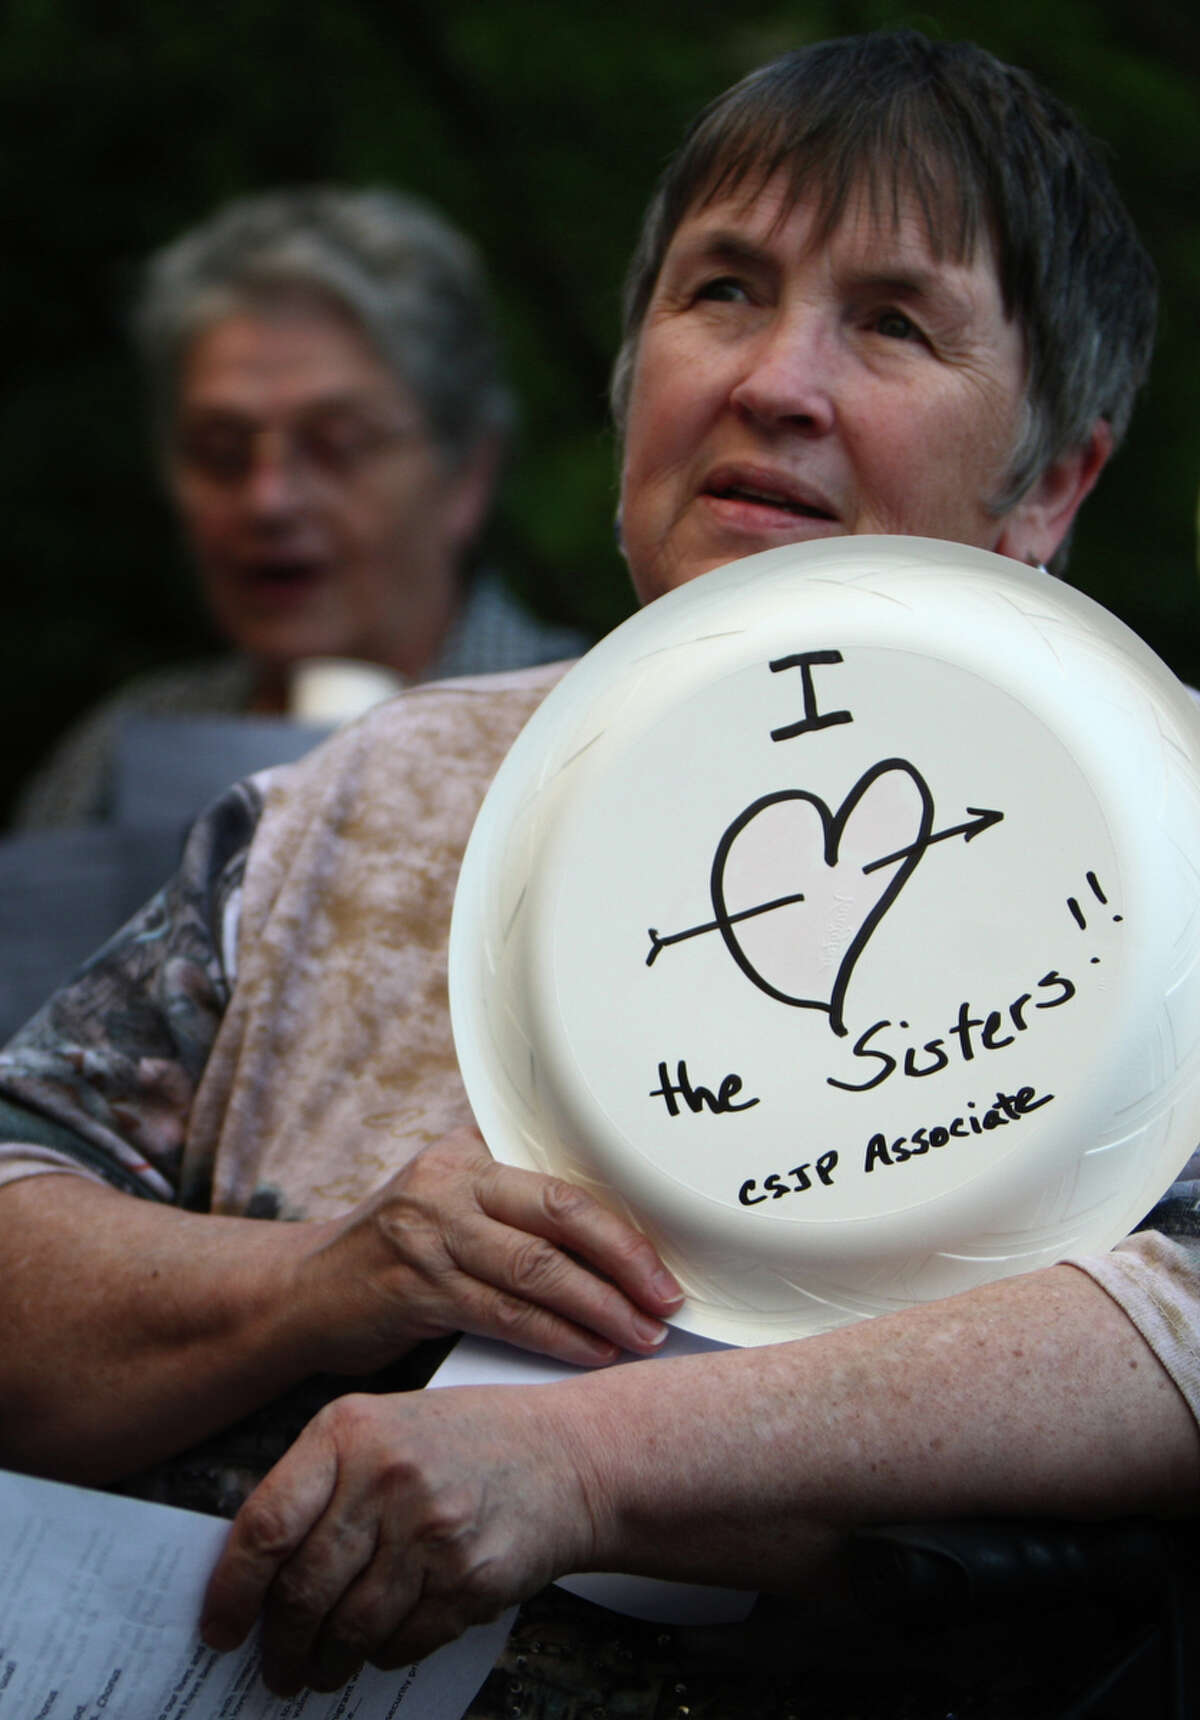 Sue Nies holds a sign during a vigil offering support for Catholic nuns at St. James Cathedral in Seattle. Seattle Archbishop Peter Sartain has been appointed by the Pope to impose discipline on American nuns that the Vatican says sometimes promote